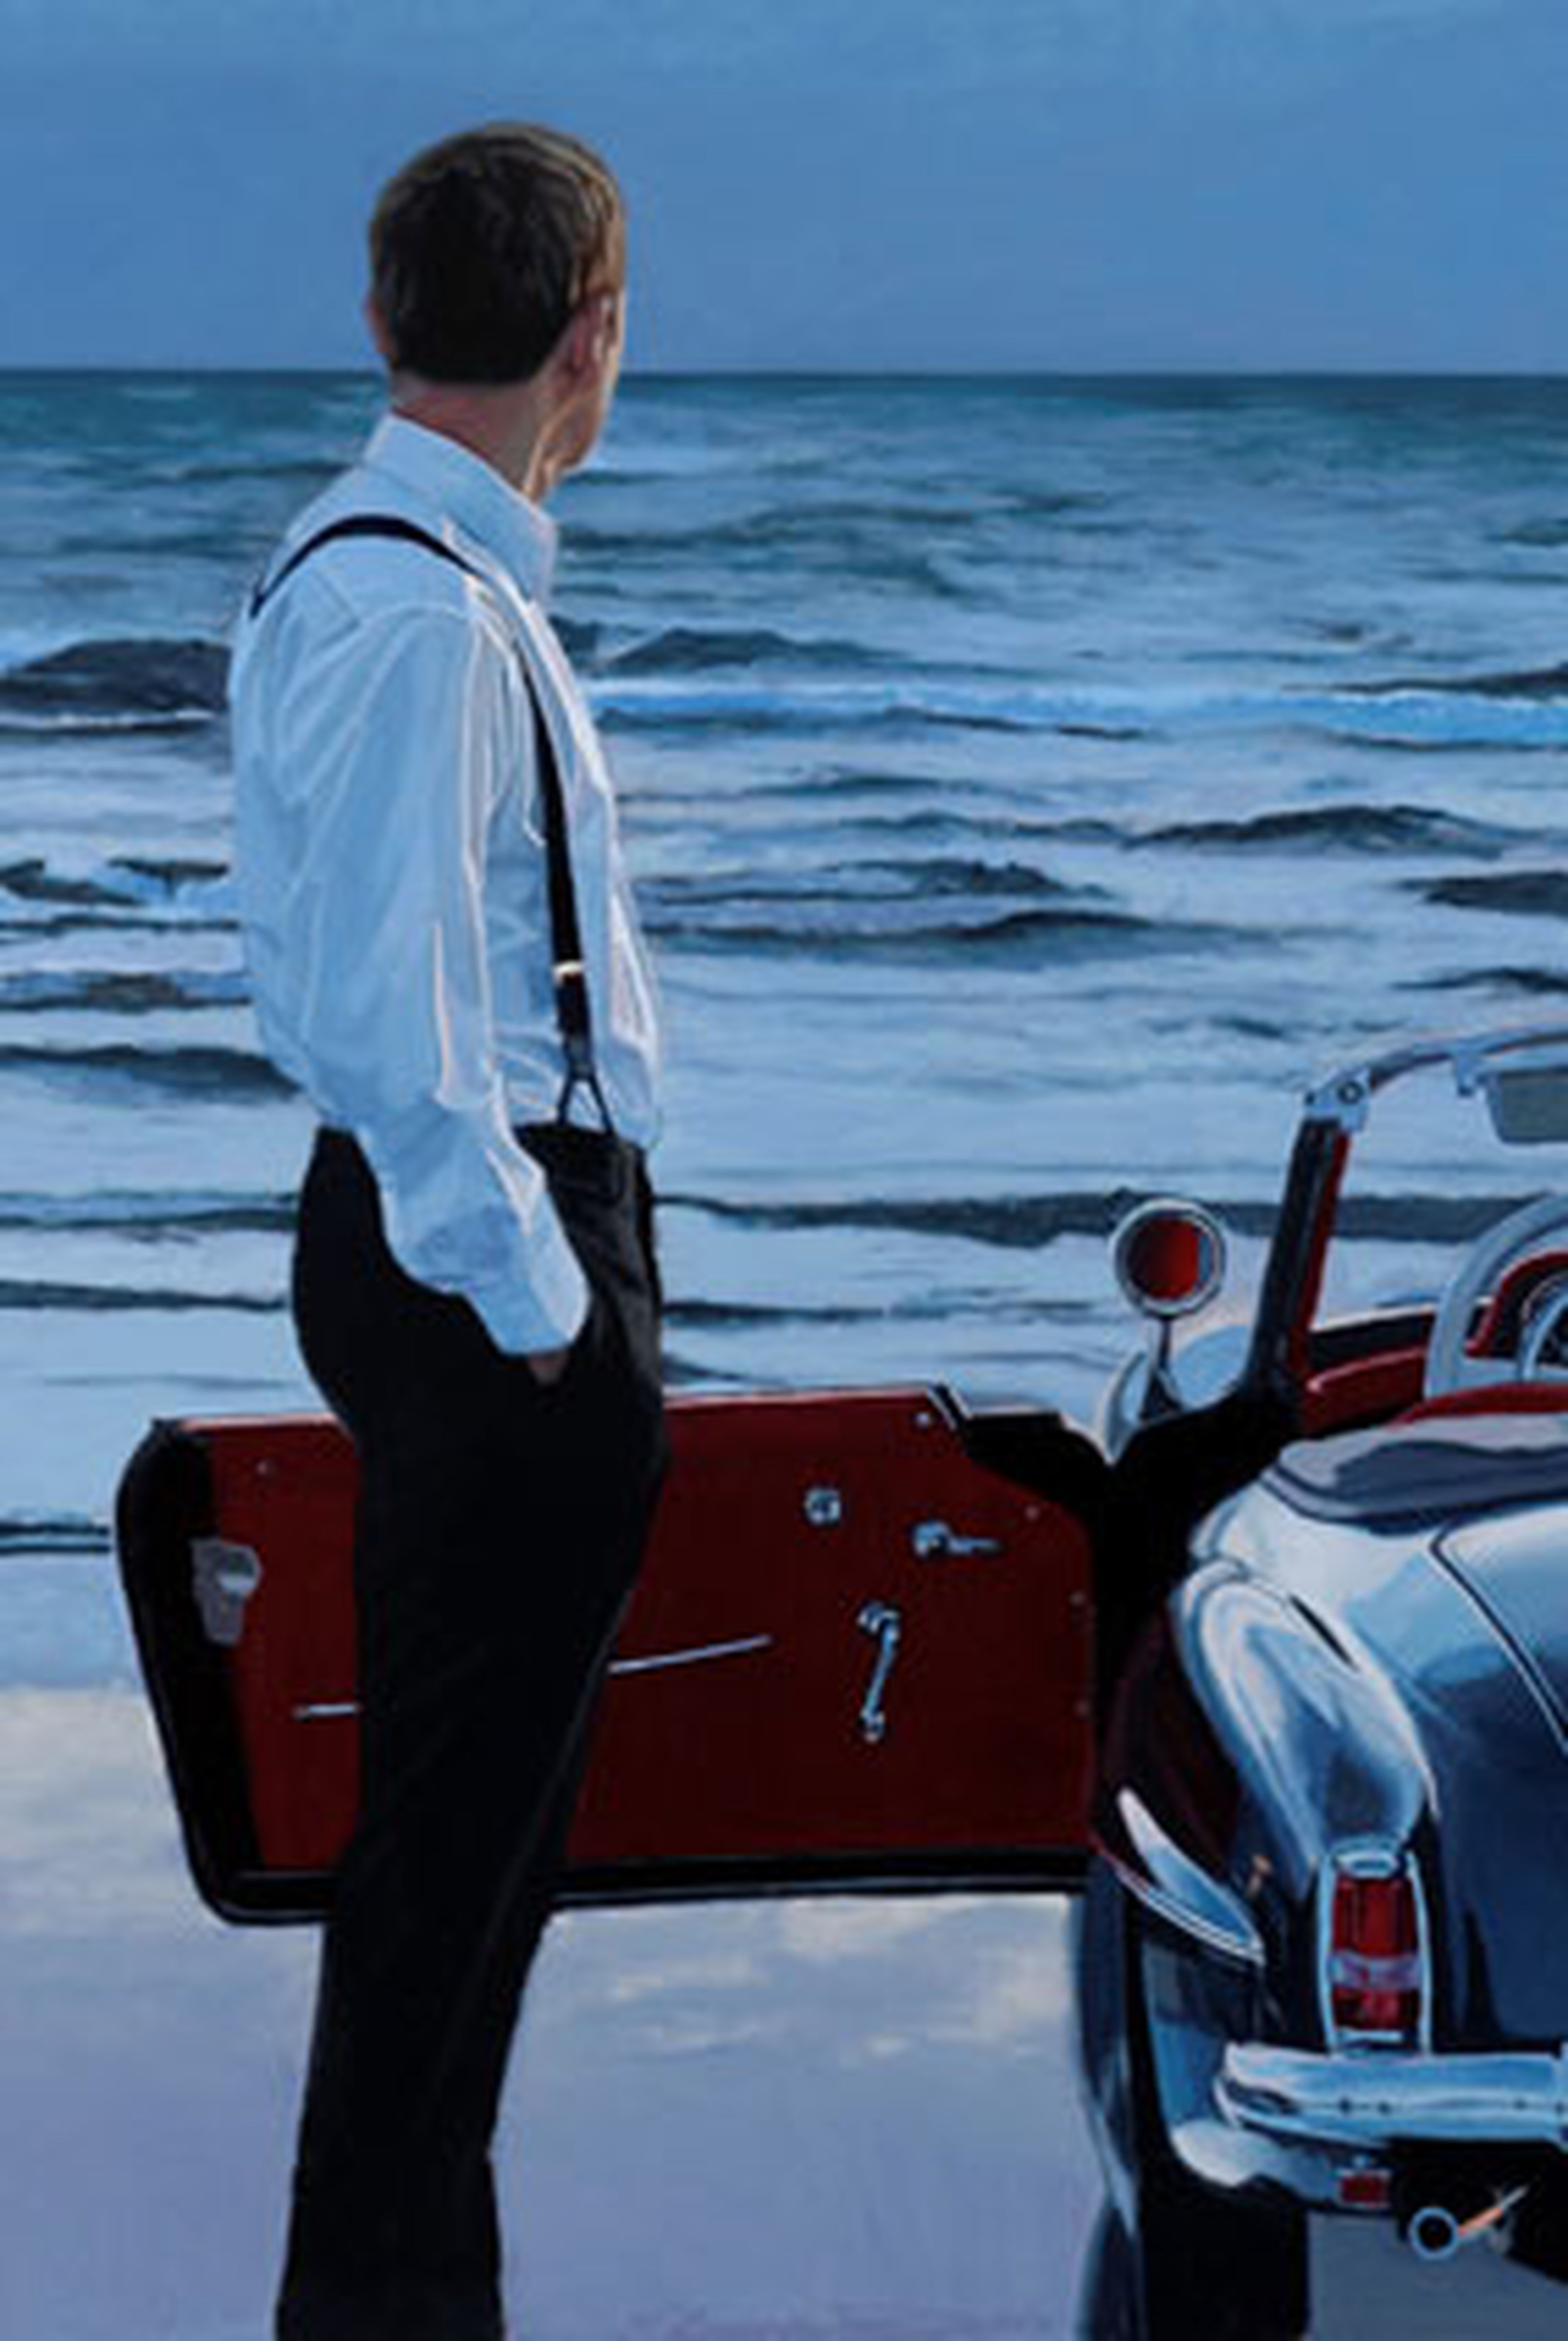 Love this painting by Scotland artist IainFaulkner that I discovered & met in Paris in June 2015; it has a very James Bond 007 Secret Agent aura that is very dramatic as he is Contemplating Life